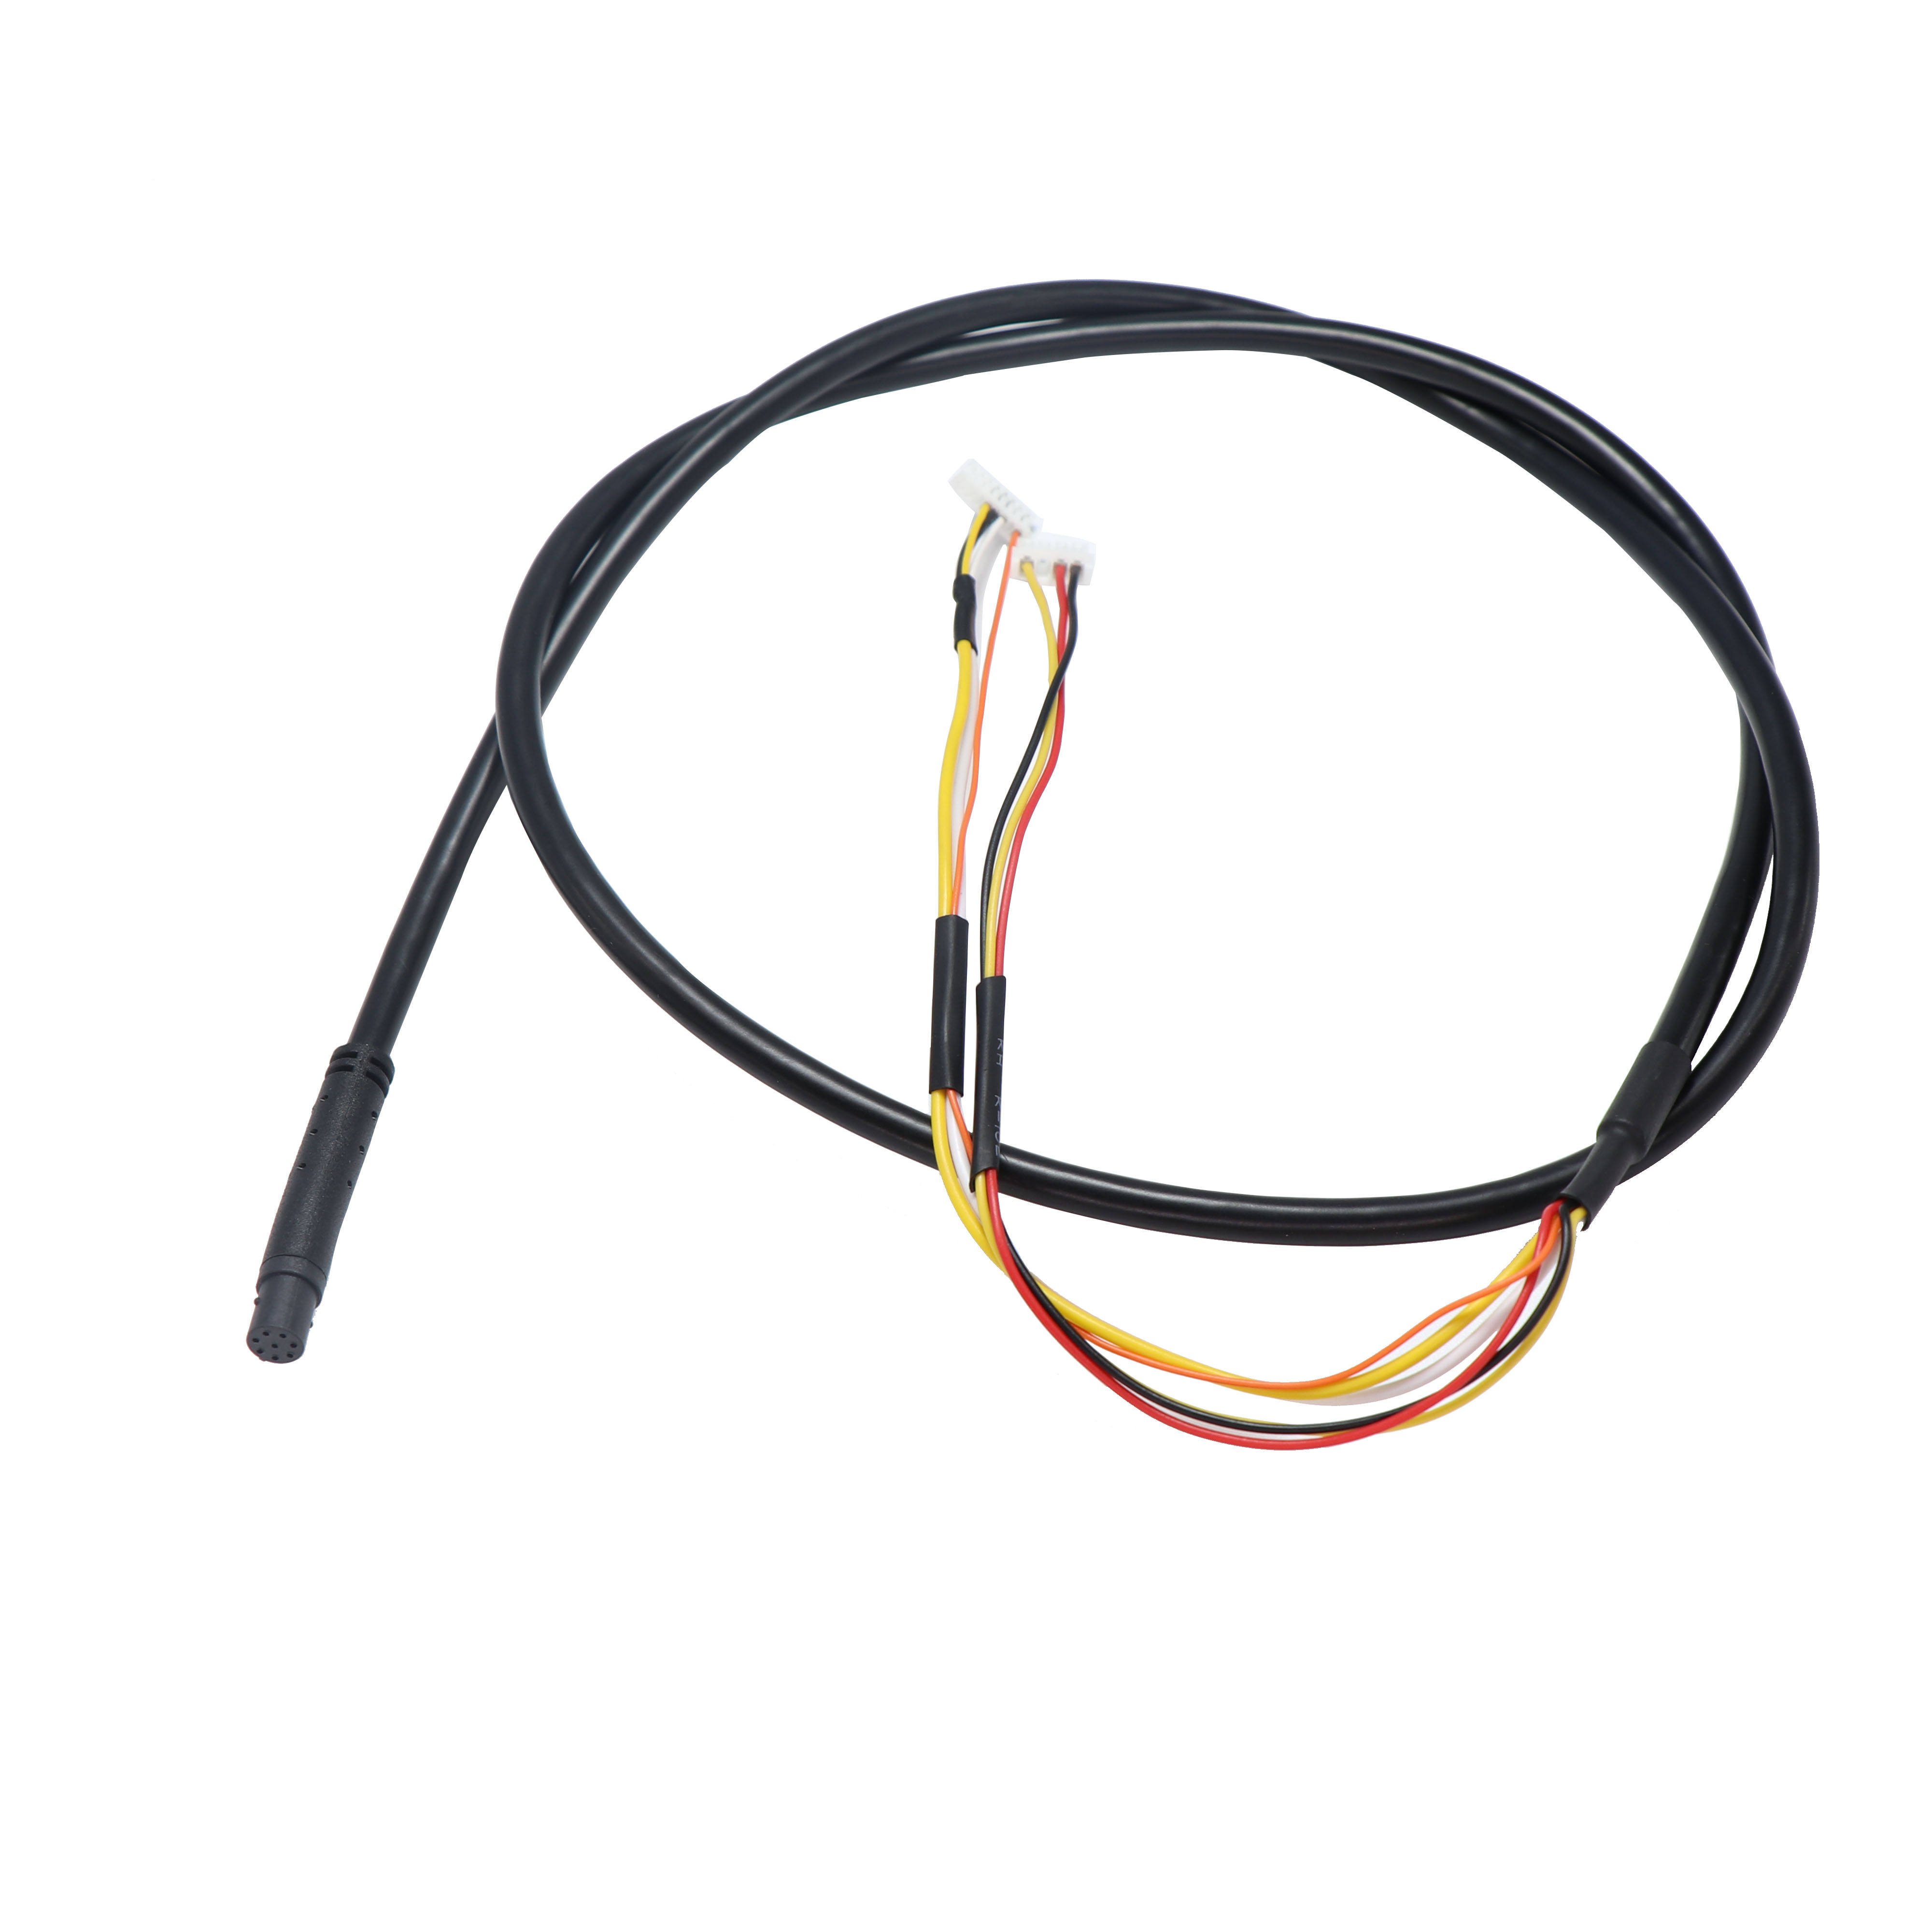 Terminal [ Car Cable Connector ] Connector Cable Connector Car Terminal Lamp Electric Lighting M8 8pin Wiring Harness Cable Connector